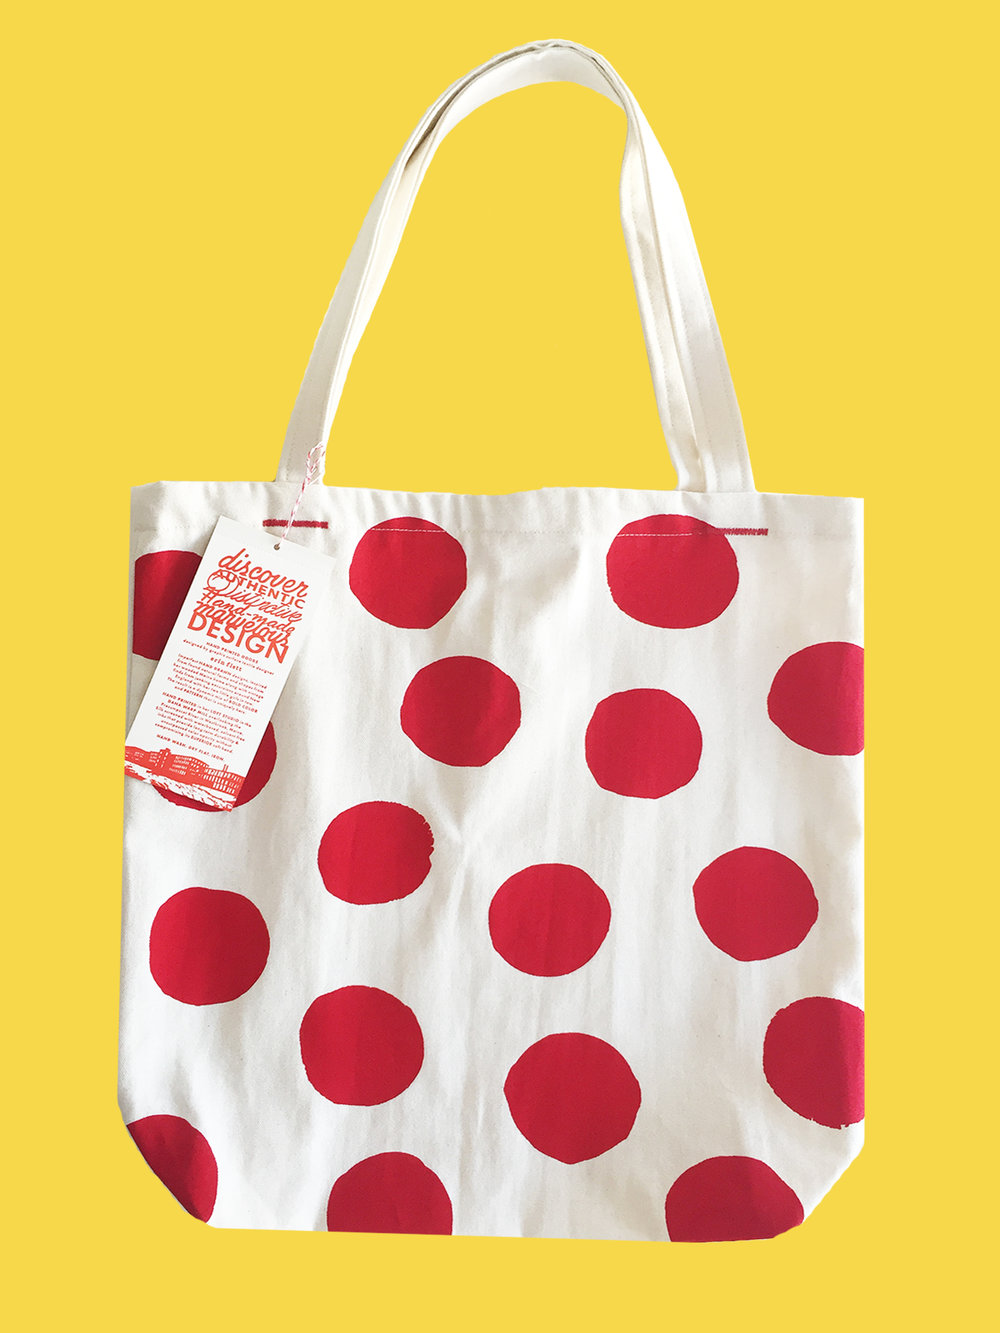 Salt Supply_Erin Flett Red Dot Tote.jpg